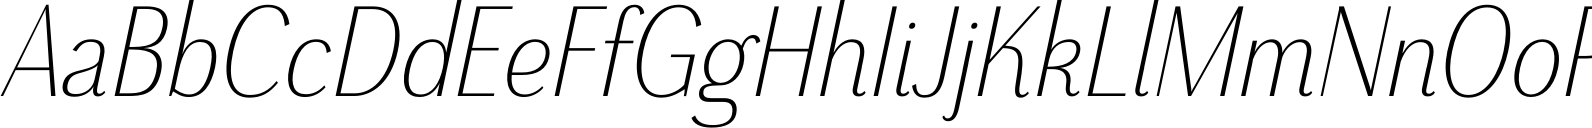 Grenale Cond Light Italic Font